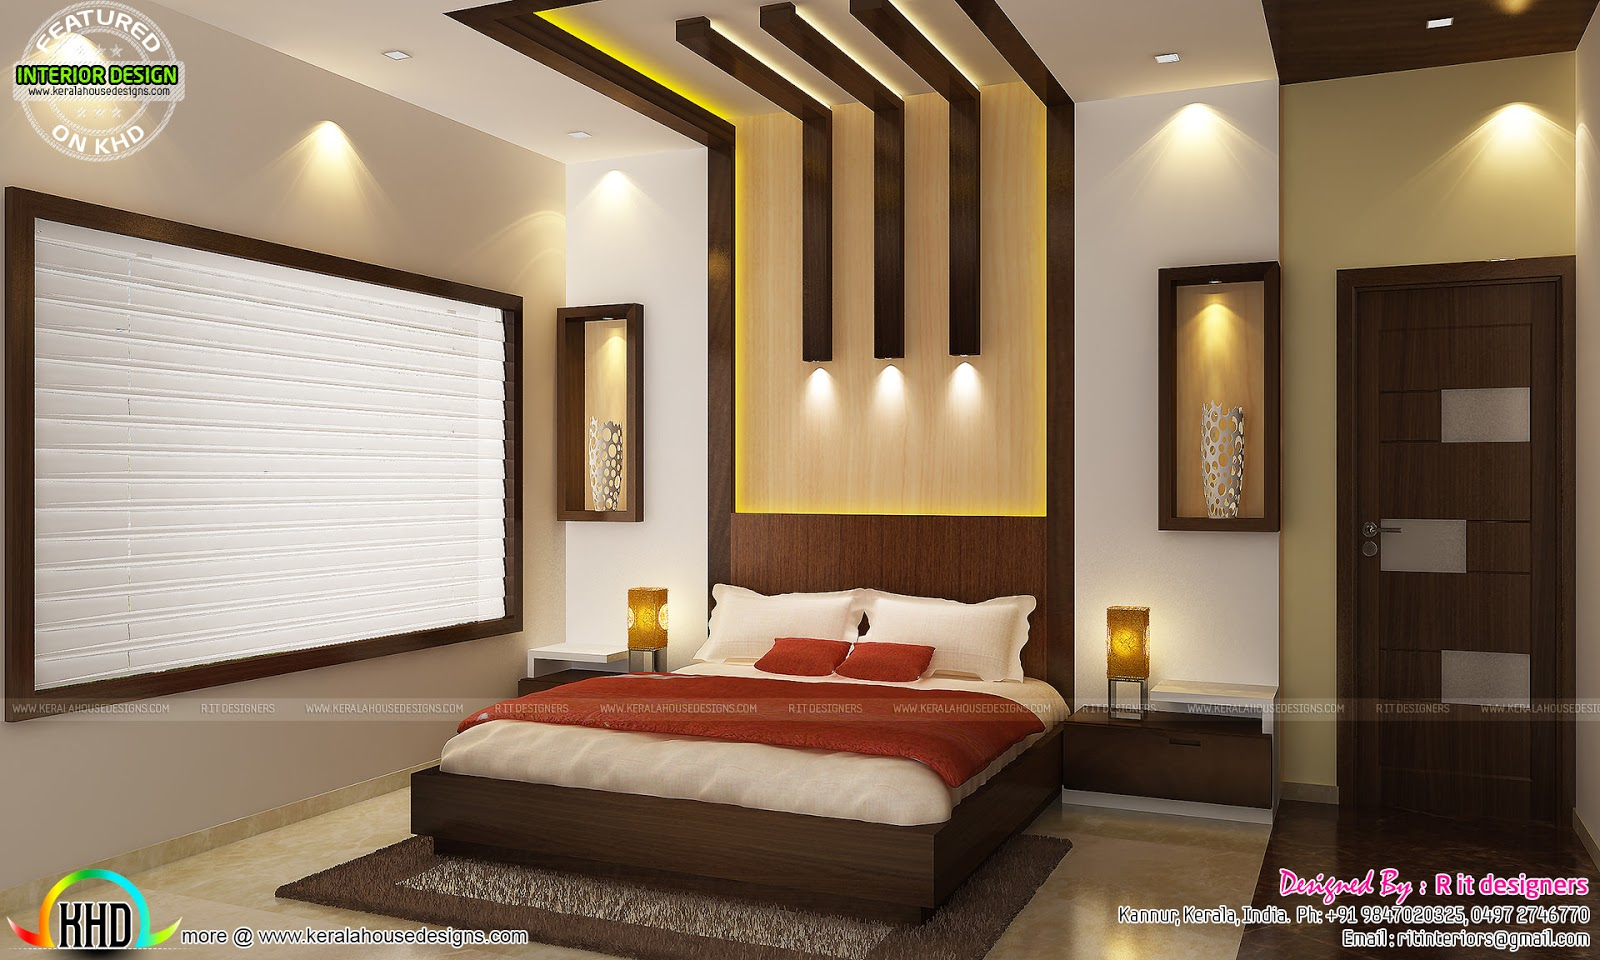 Kitchen living bedroom dining interior decor kerala for Interior designs idea